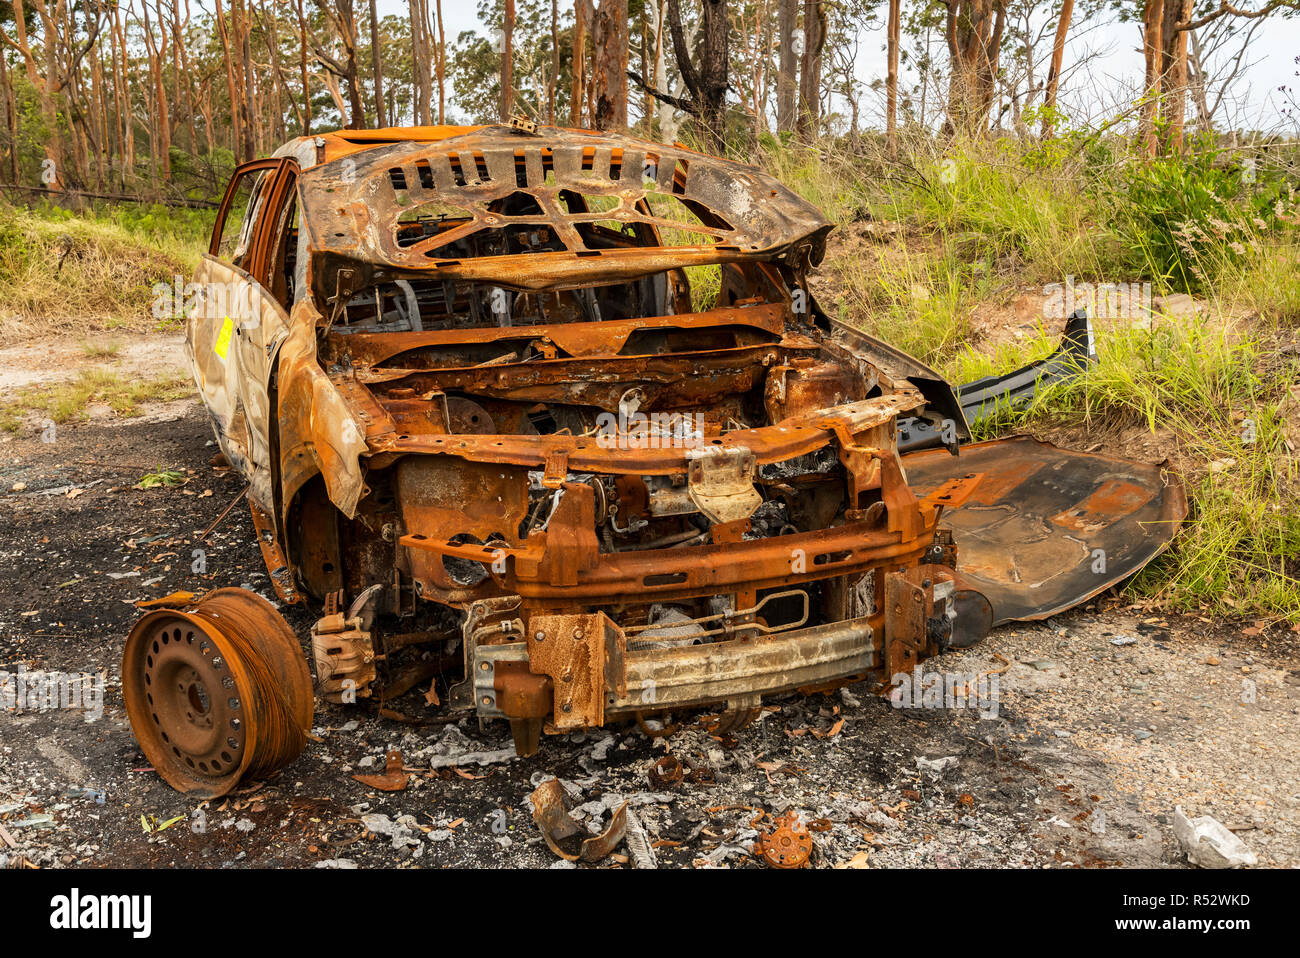 A burnt out car left to rot in the coutryside, just another one of many social issues around the world. - Stock Image